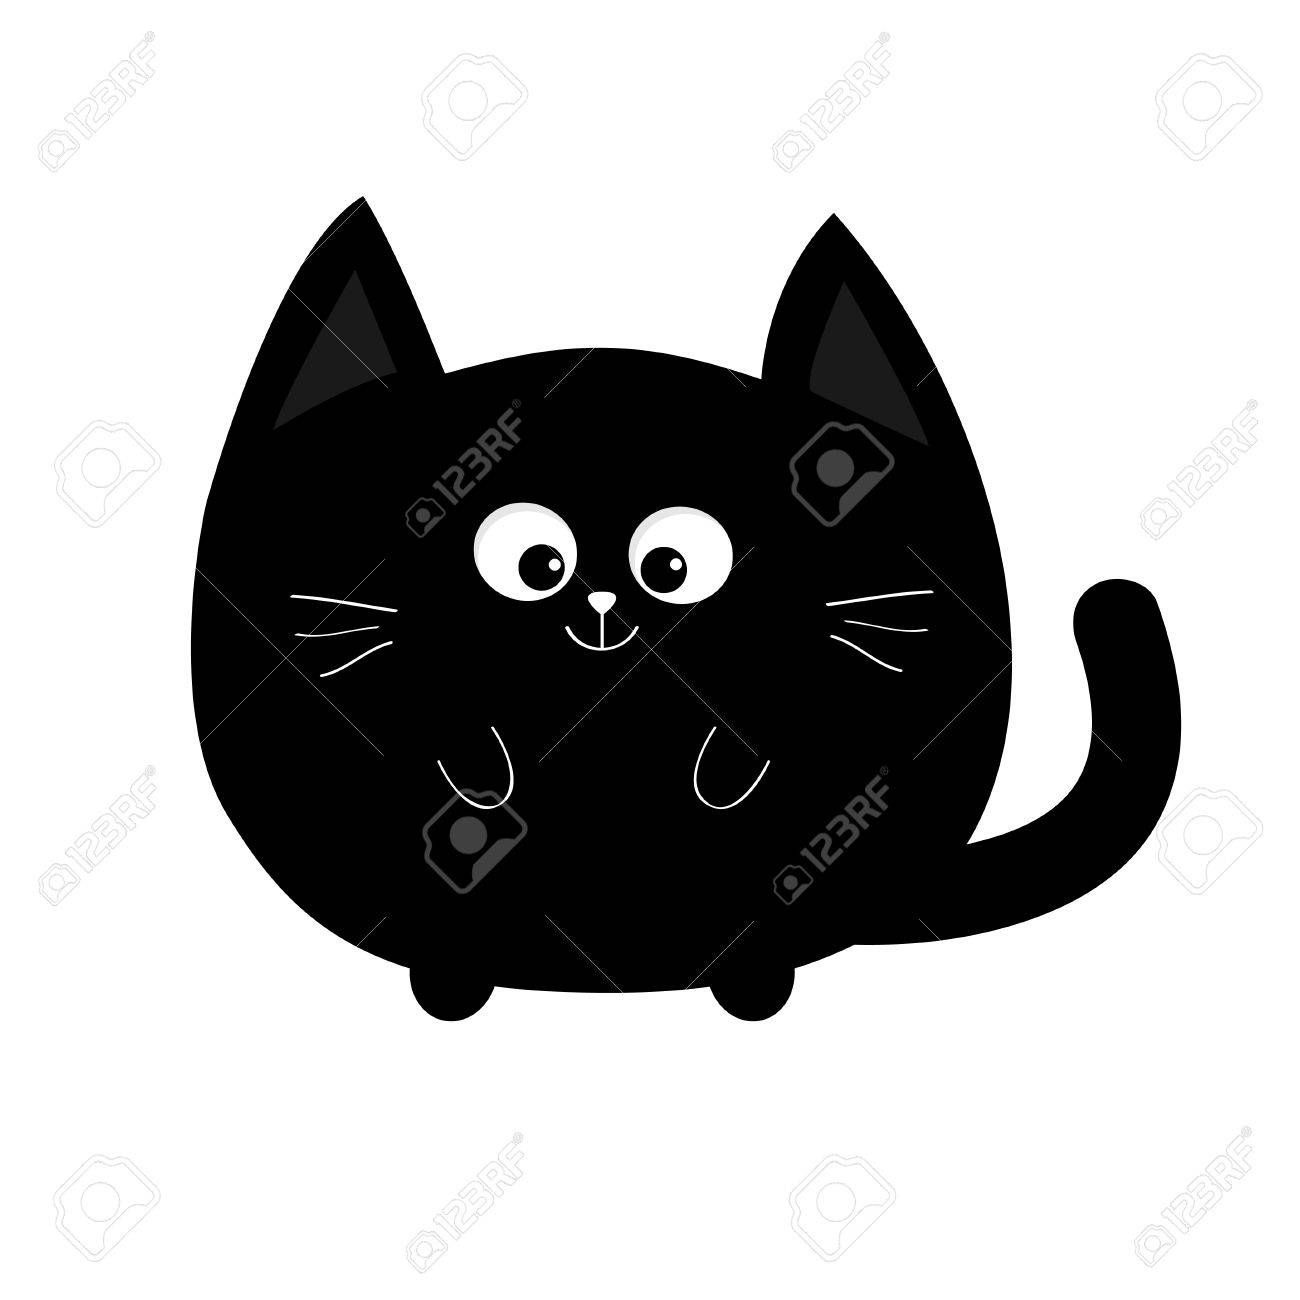 Round Shape Black Cat Icon Cute Funny Cartoon Smiling Character